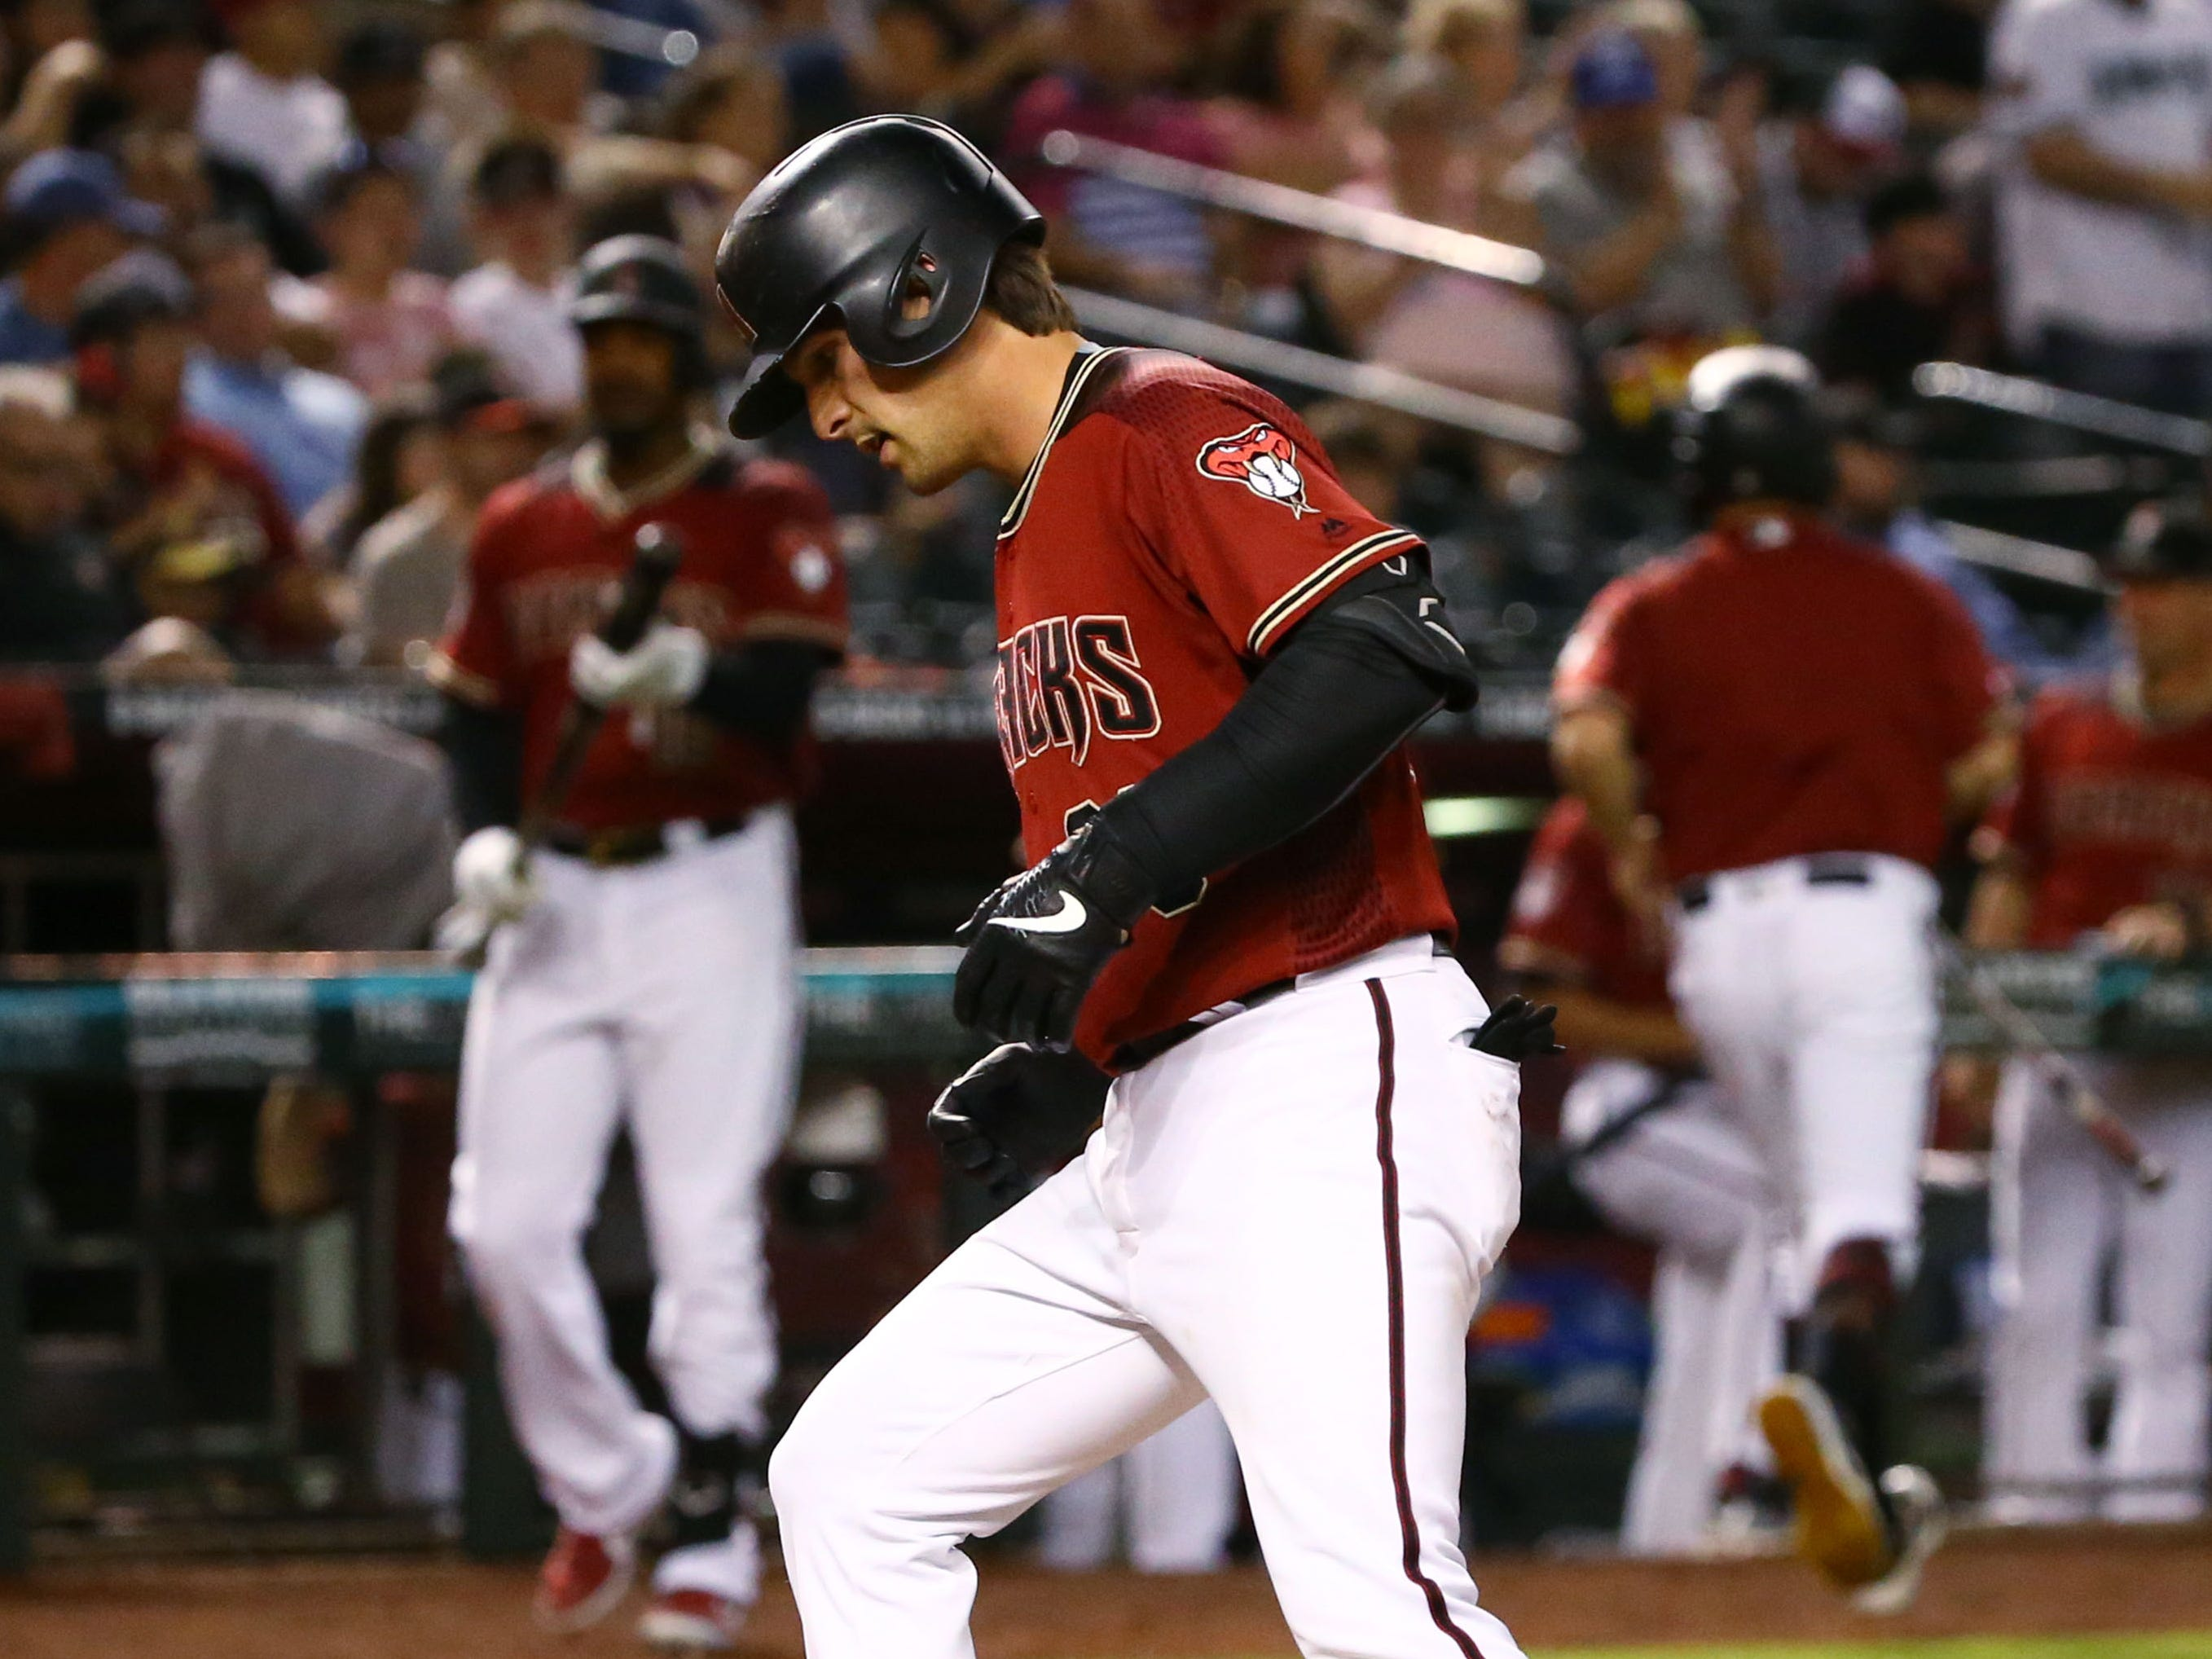 Arizona Diamondbacks John Ryan Murphy (36) steps on home plate after hitting as solo home run against the Chicago White Sox in the third inning during a spring training game on Mar. 25, 2019 at Chase Field in Phoenix, Ariz.